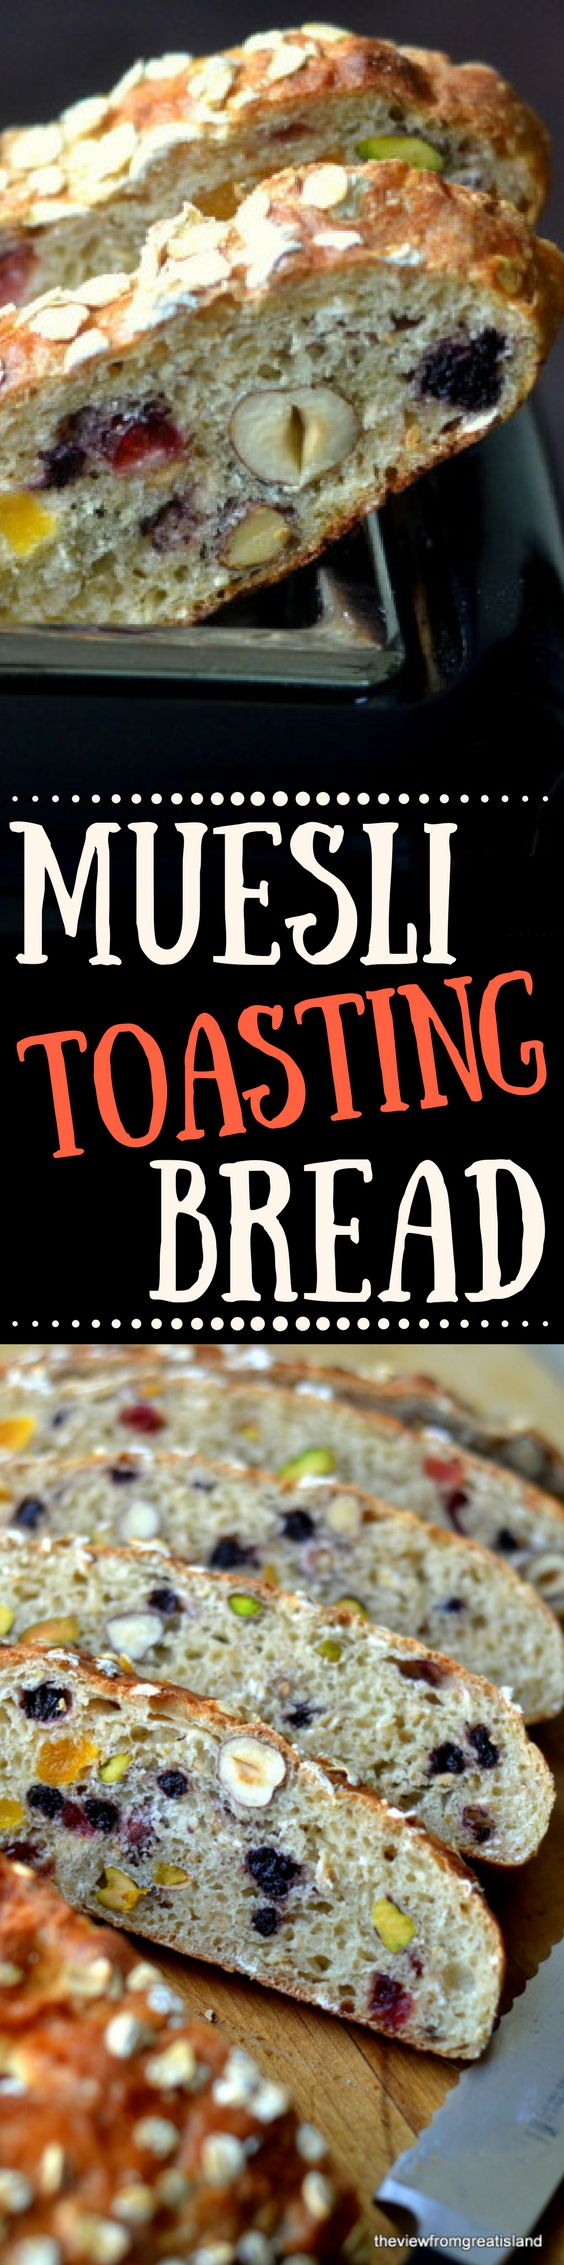 Healthy Muesli Toasting Bread is full of fruits and nuts, and makes the world's best toast! | Breakfast | Homemade Bread | Oats | Fruit and Nut Bread | Yeast Bread